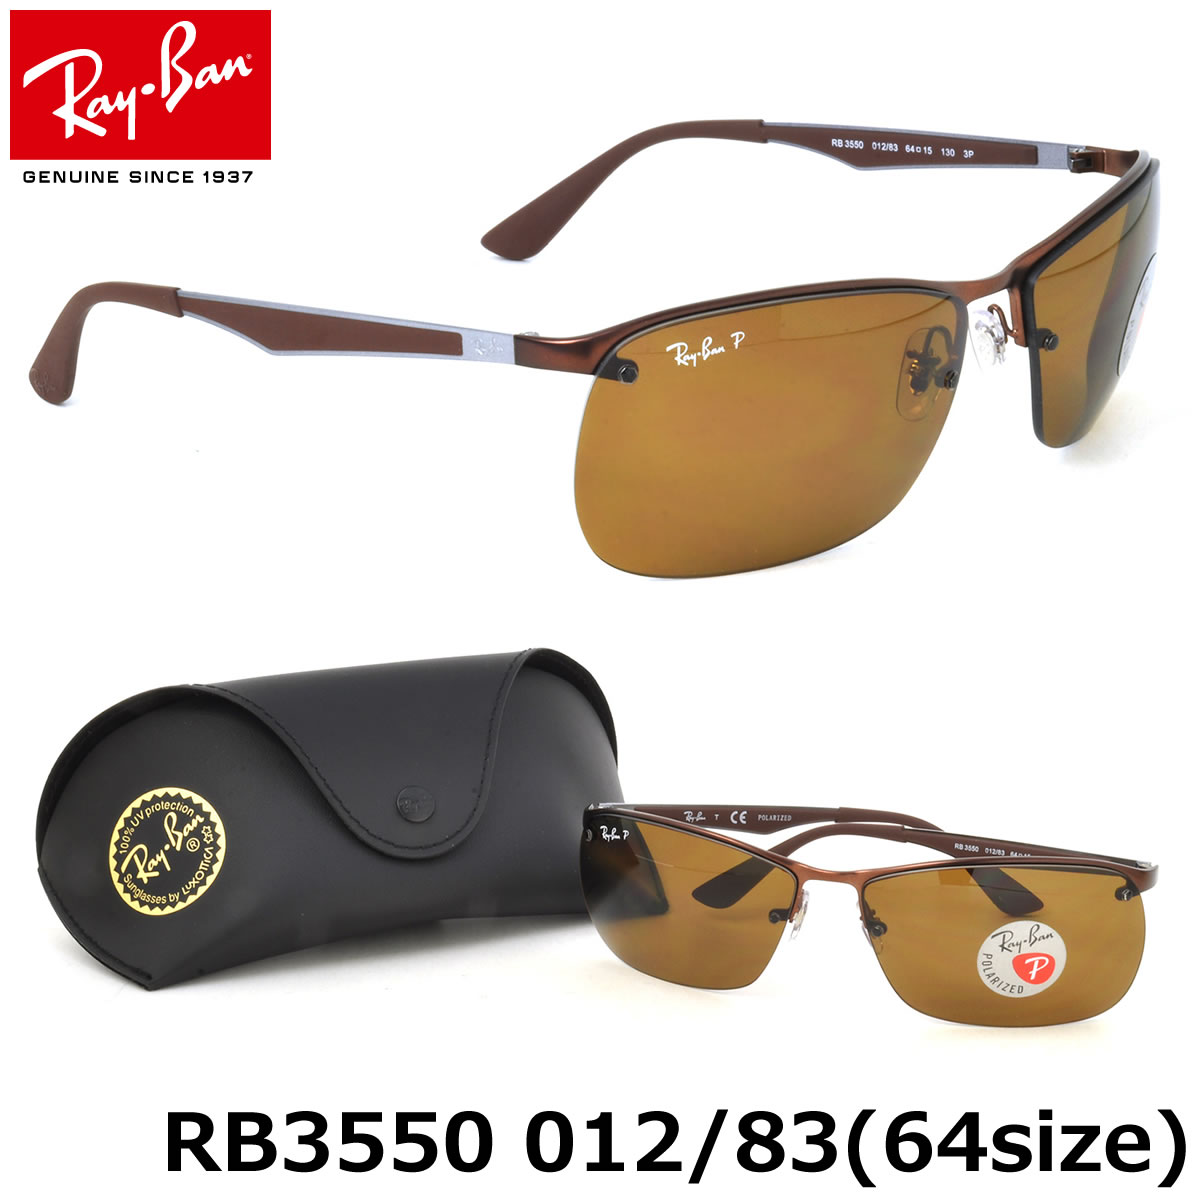 b602d92bd31 RB3550 forms reminiscent of the classic Ray-Ban of